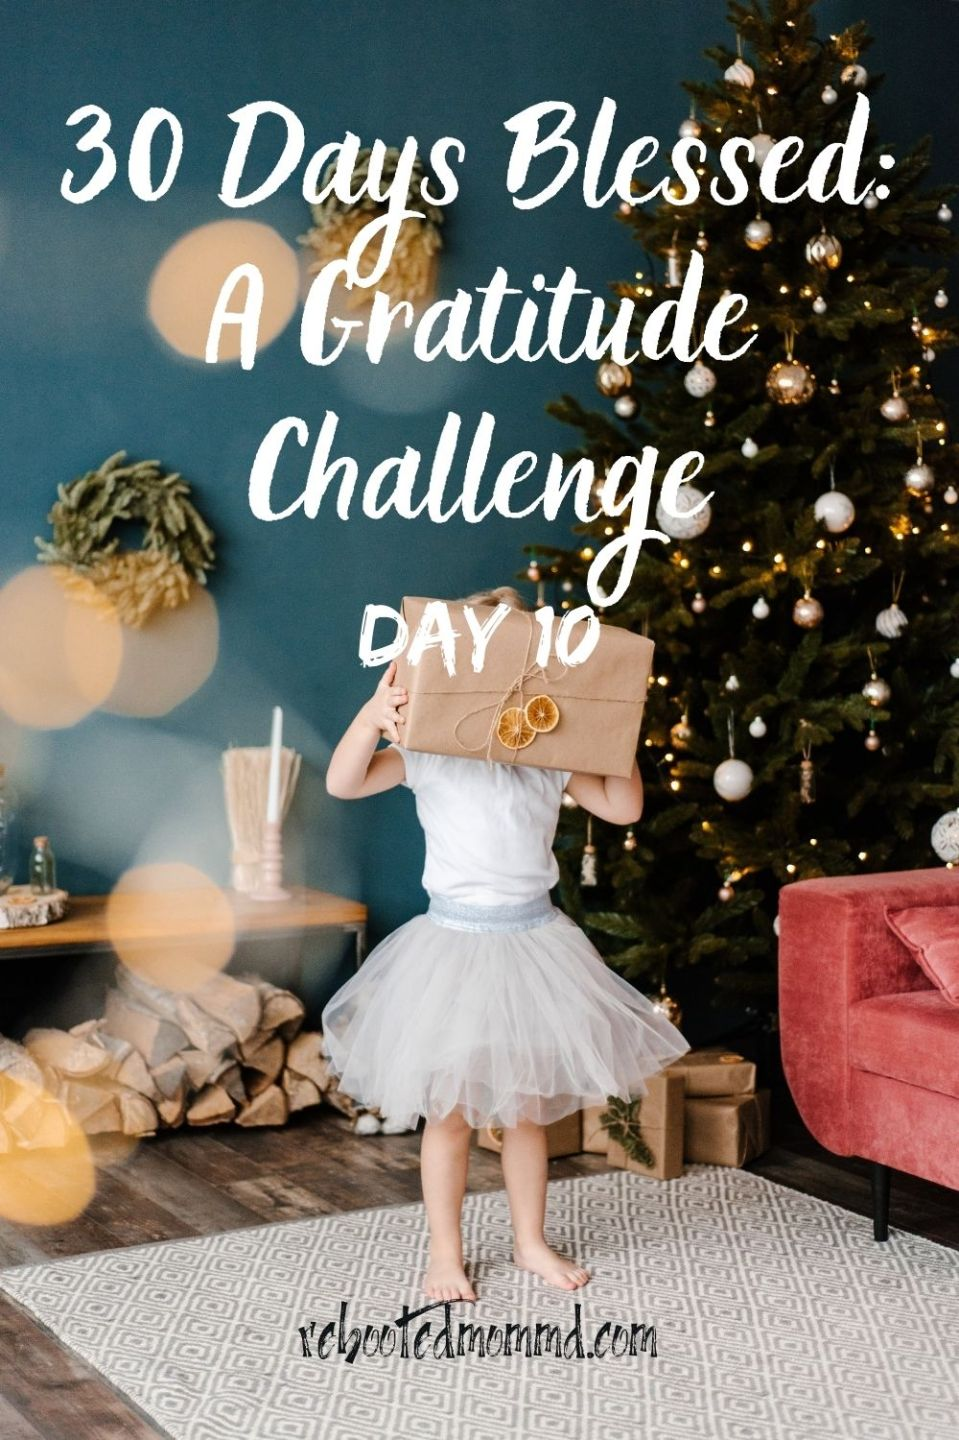 Day 11. To Be Positive and Present, Take Your Cue from a Child